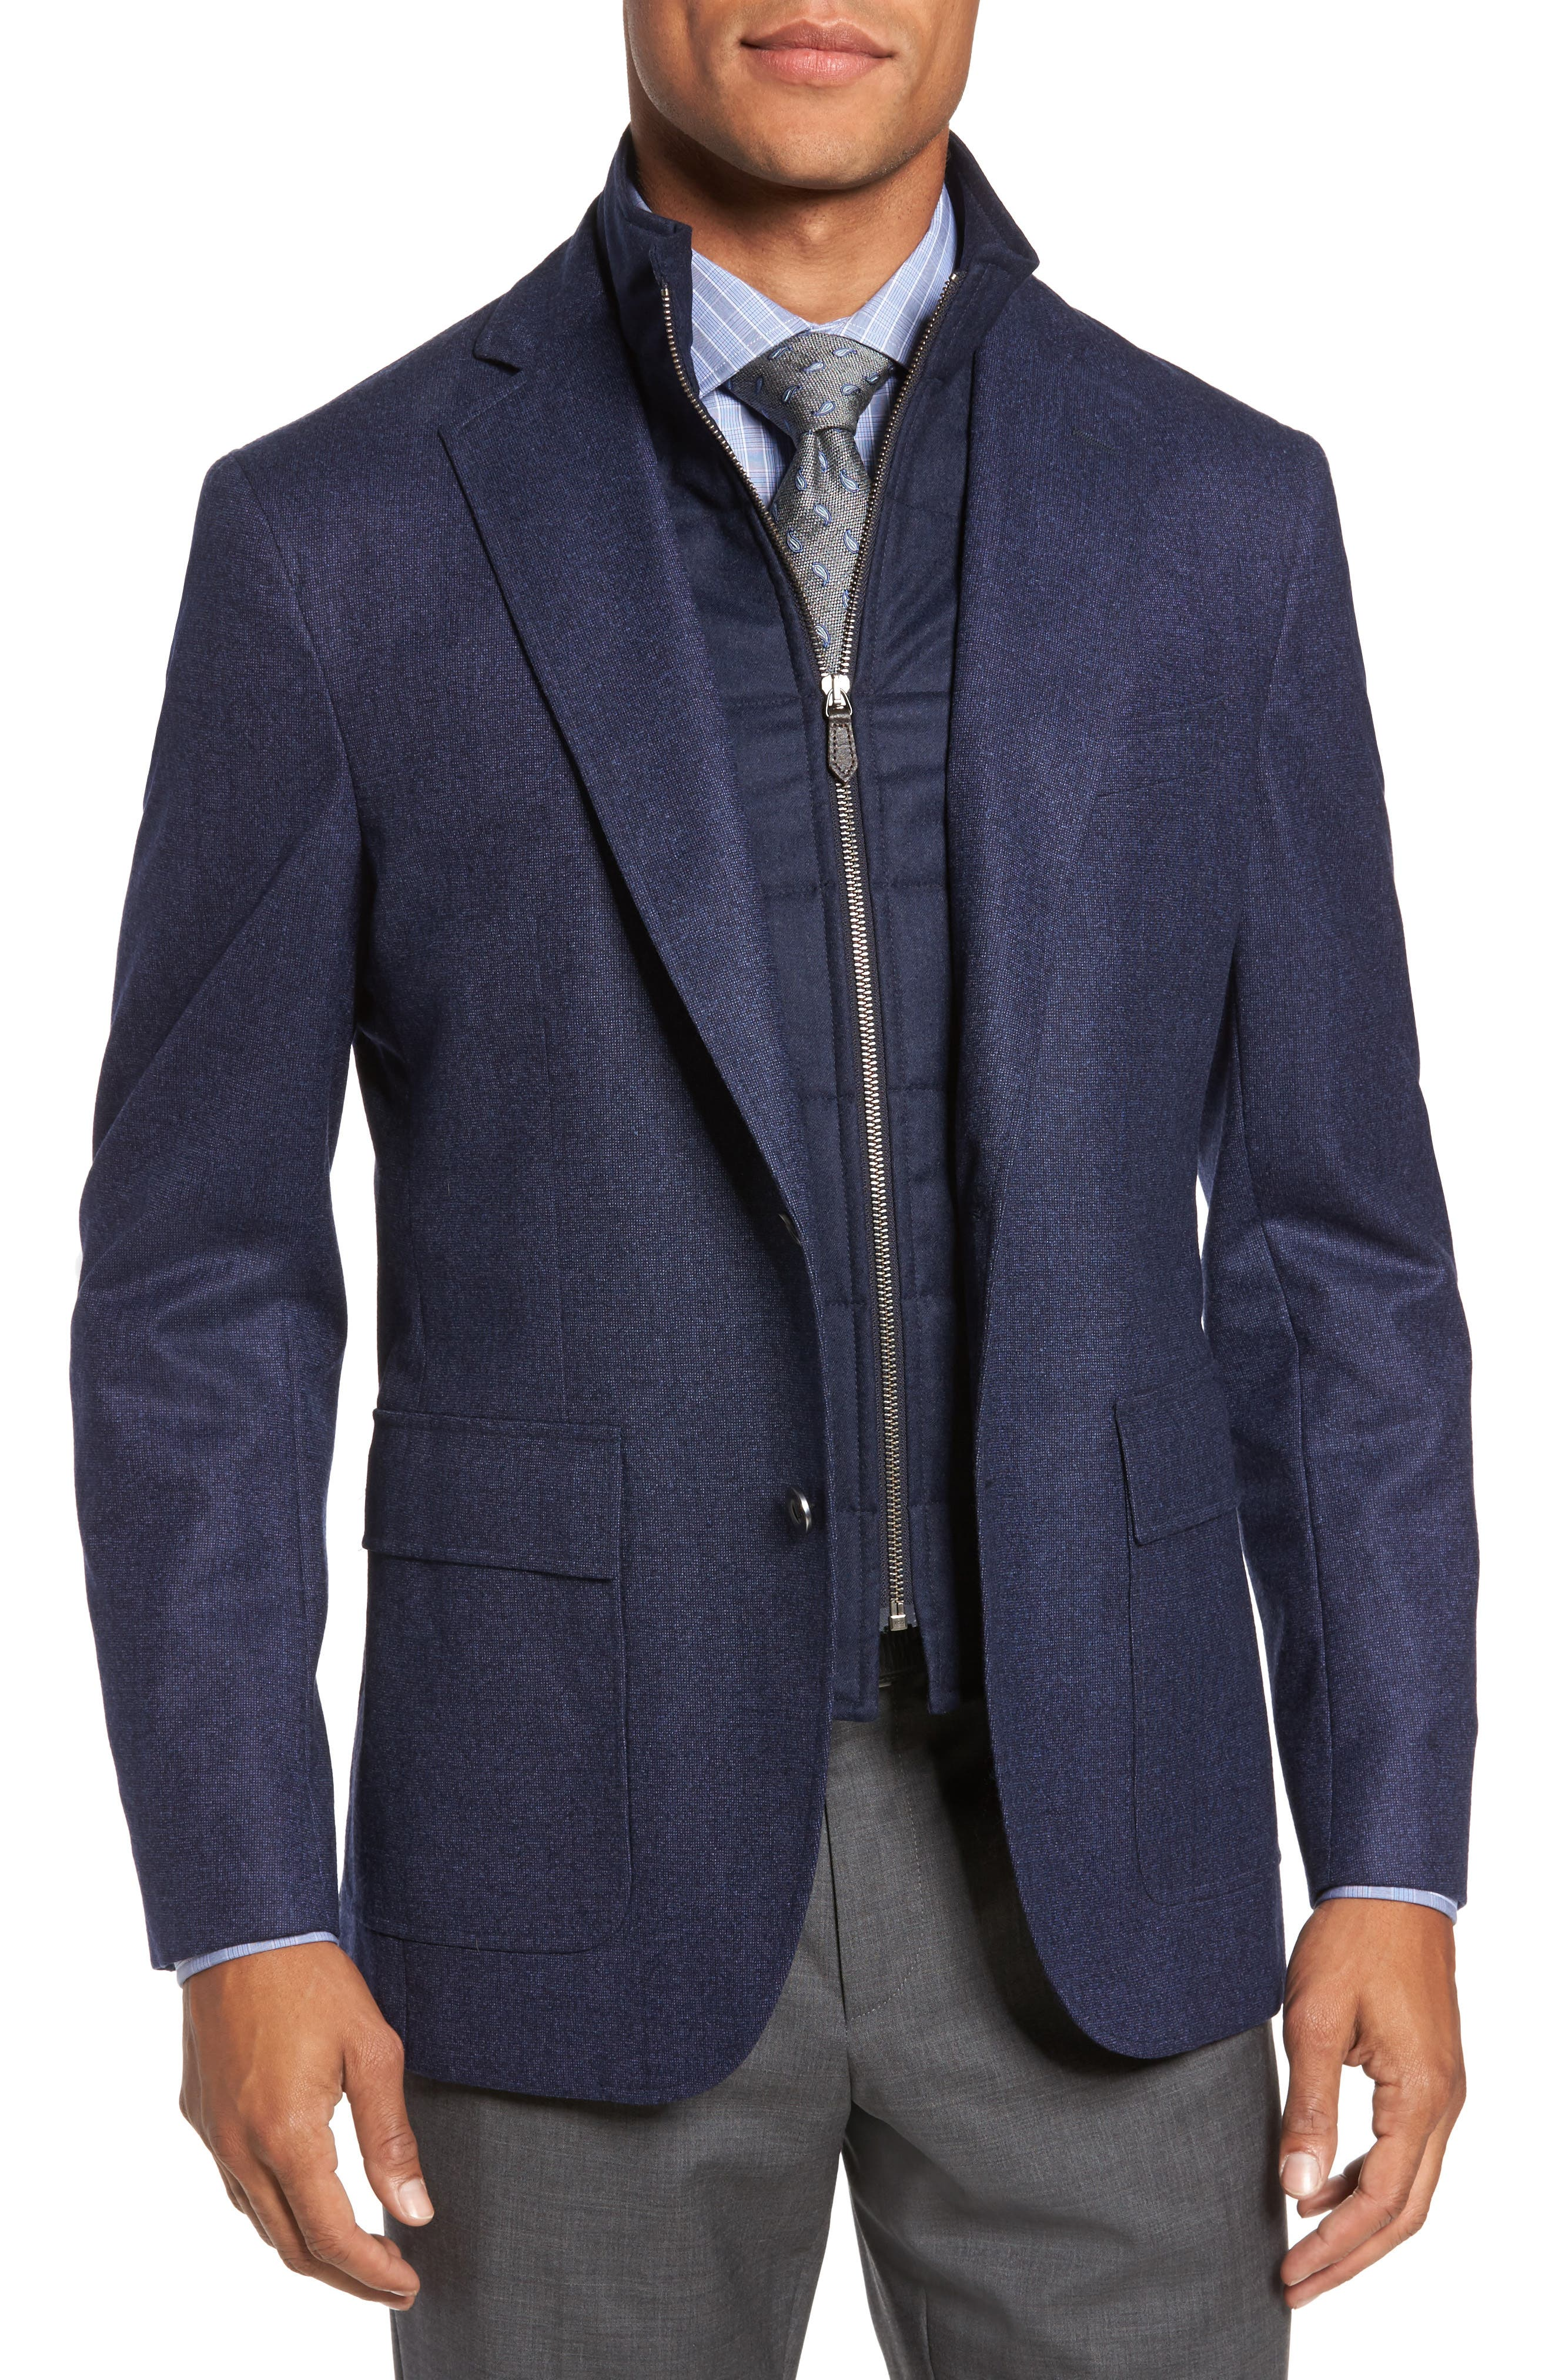 Alternate Image 1 Selected - David Donahue Aaron Classic Fit Wool Blazer